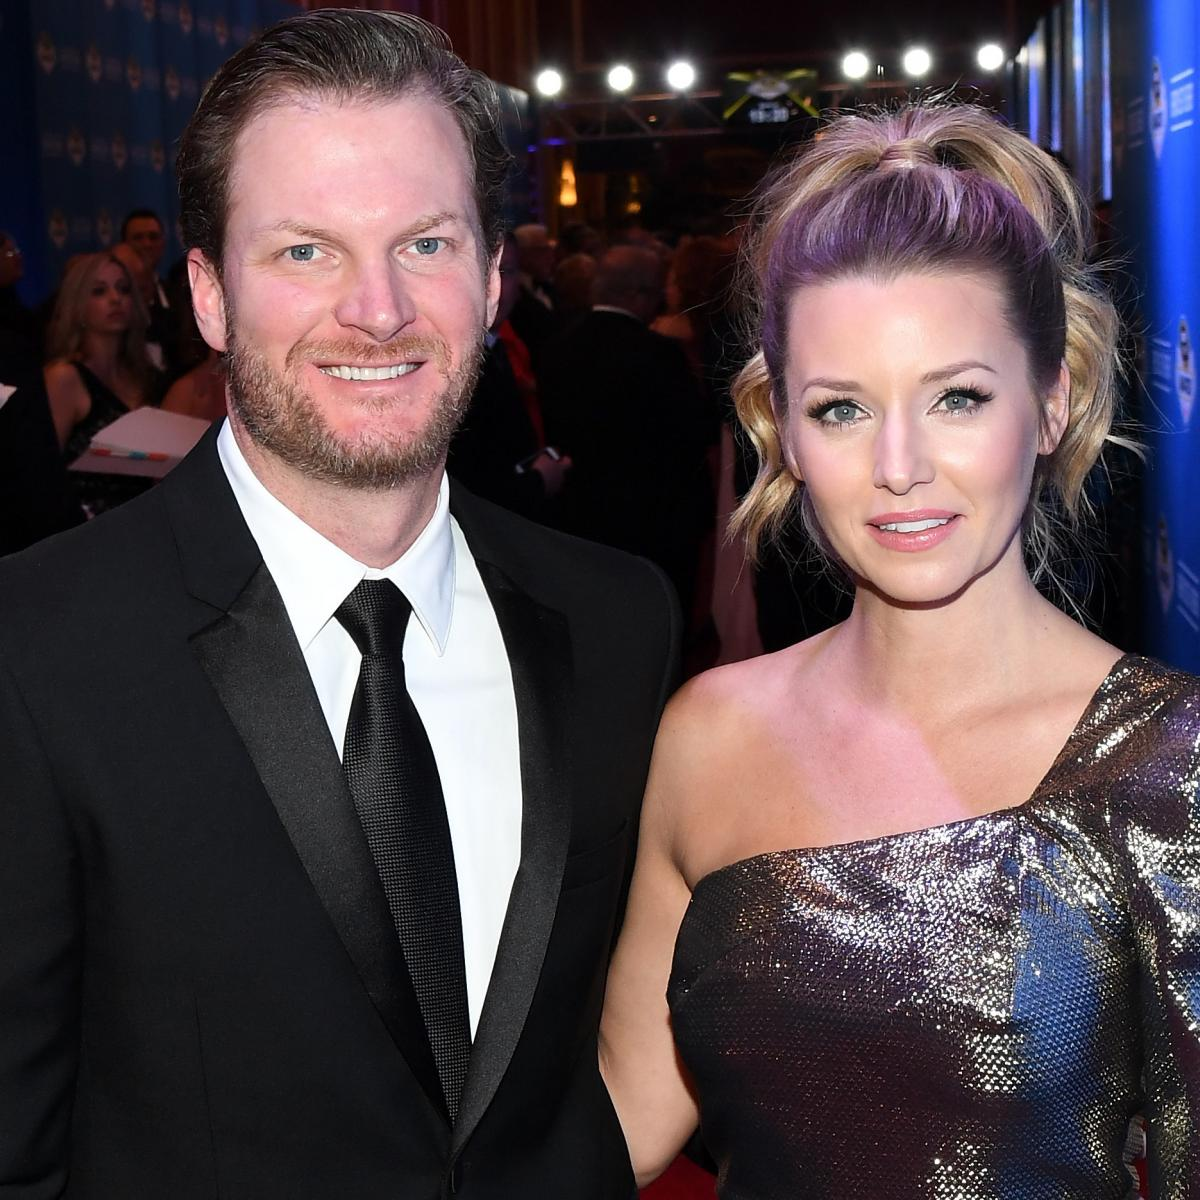 Dale Earnhardt Jr Amy Reimann Wedding Attendees Photos Location Details Bleacher Report Latest News Videos And Highlights Dale is known for being a popular nascar driver to whom teresa met him in the late. dale earnhardt jr amy reimann wedding